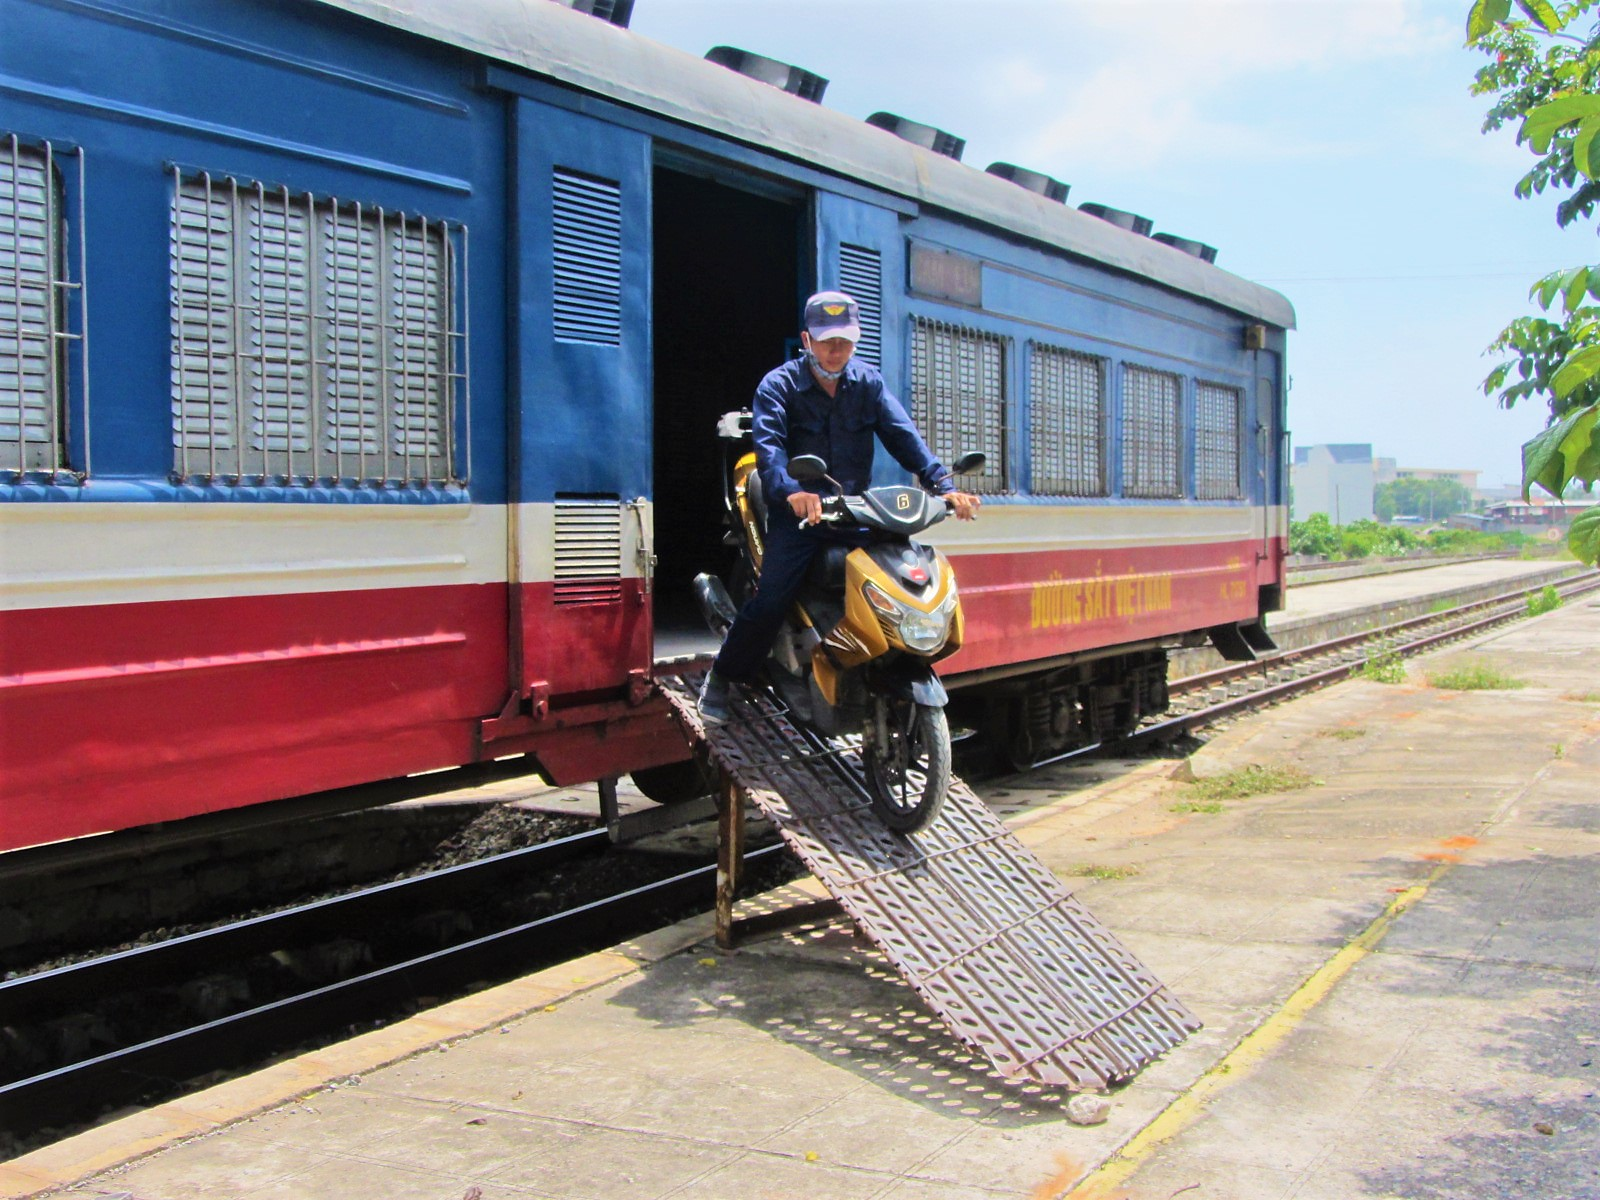 Riding off the train from Saigon to Phan Thiet, south-central coast